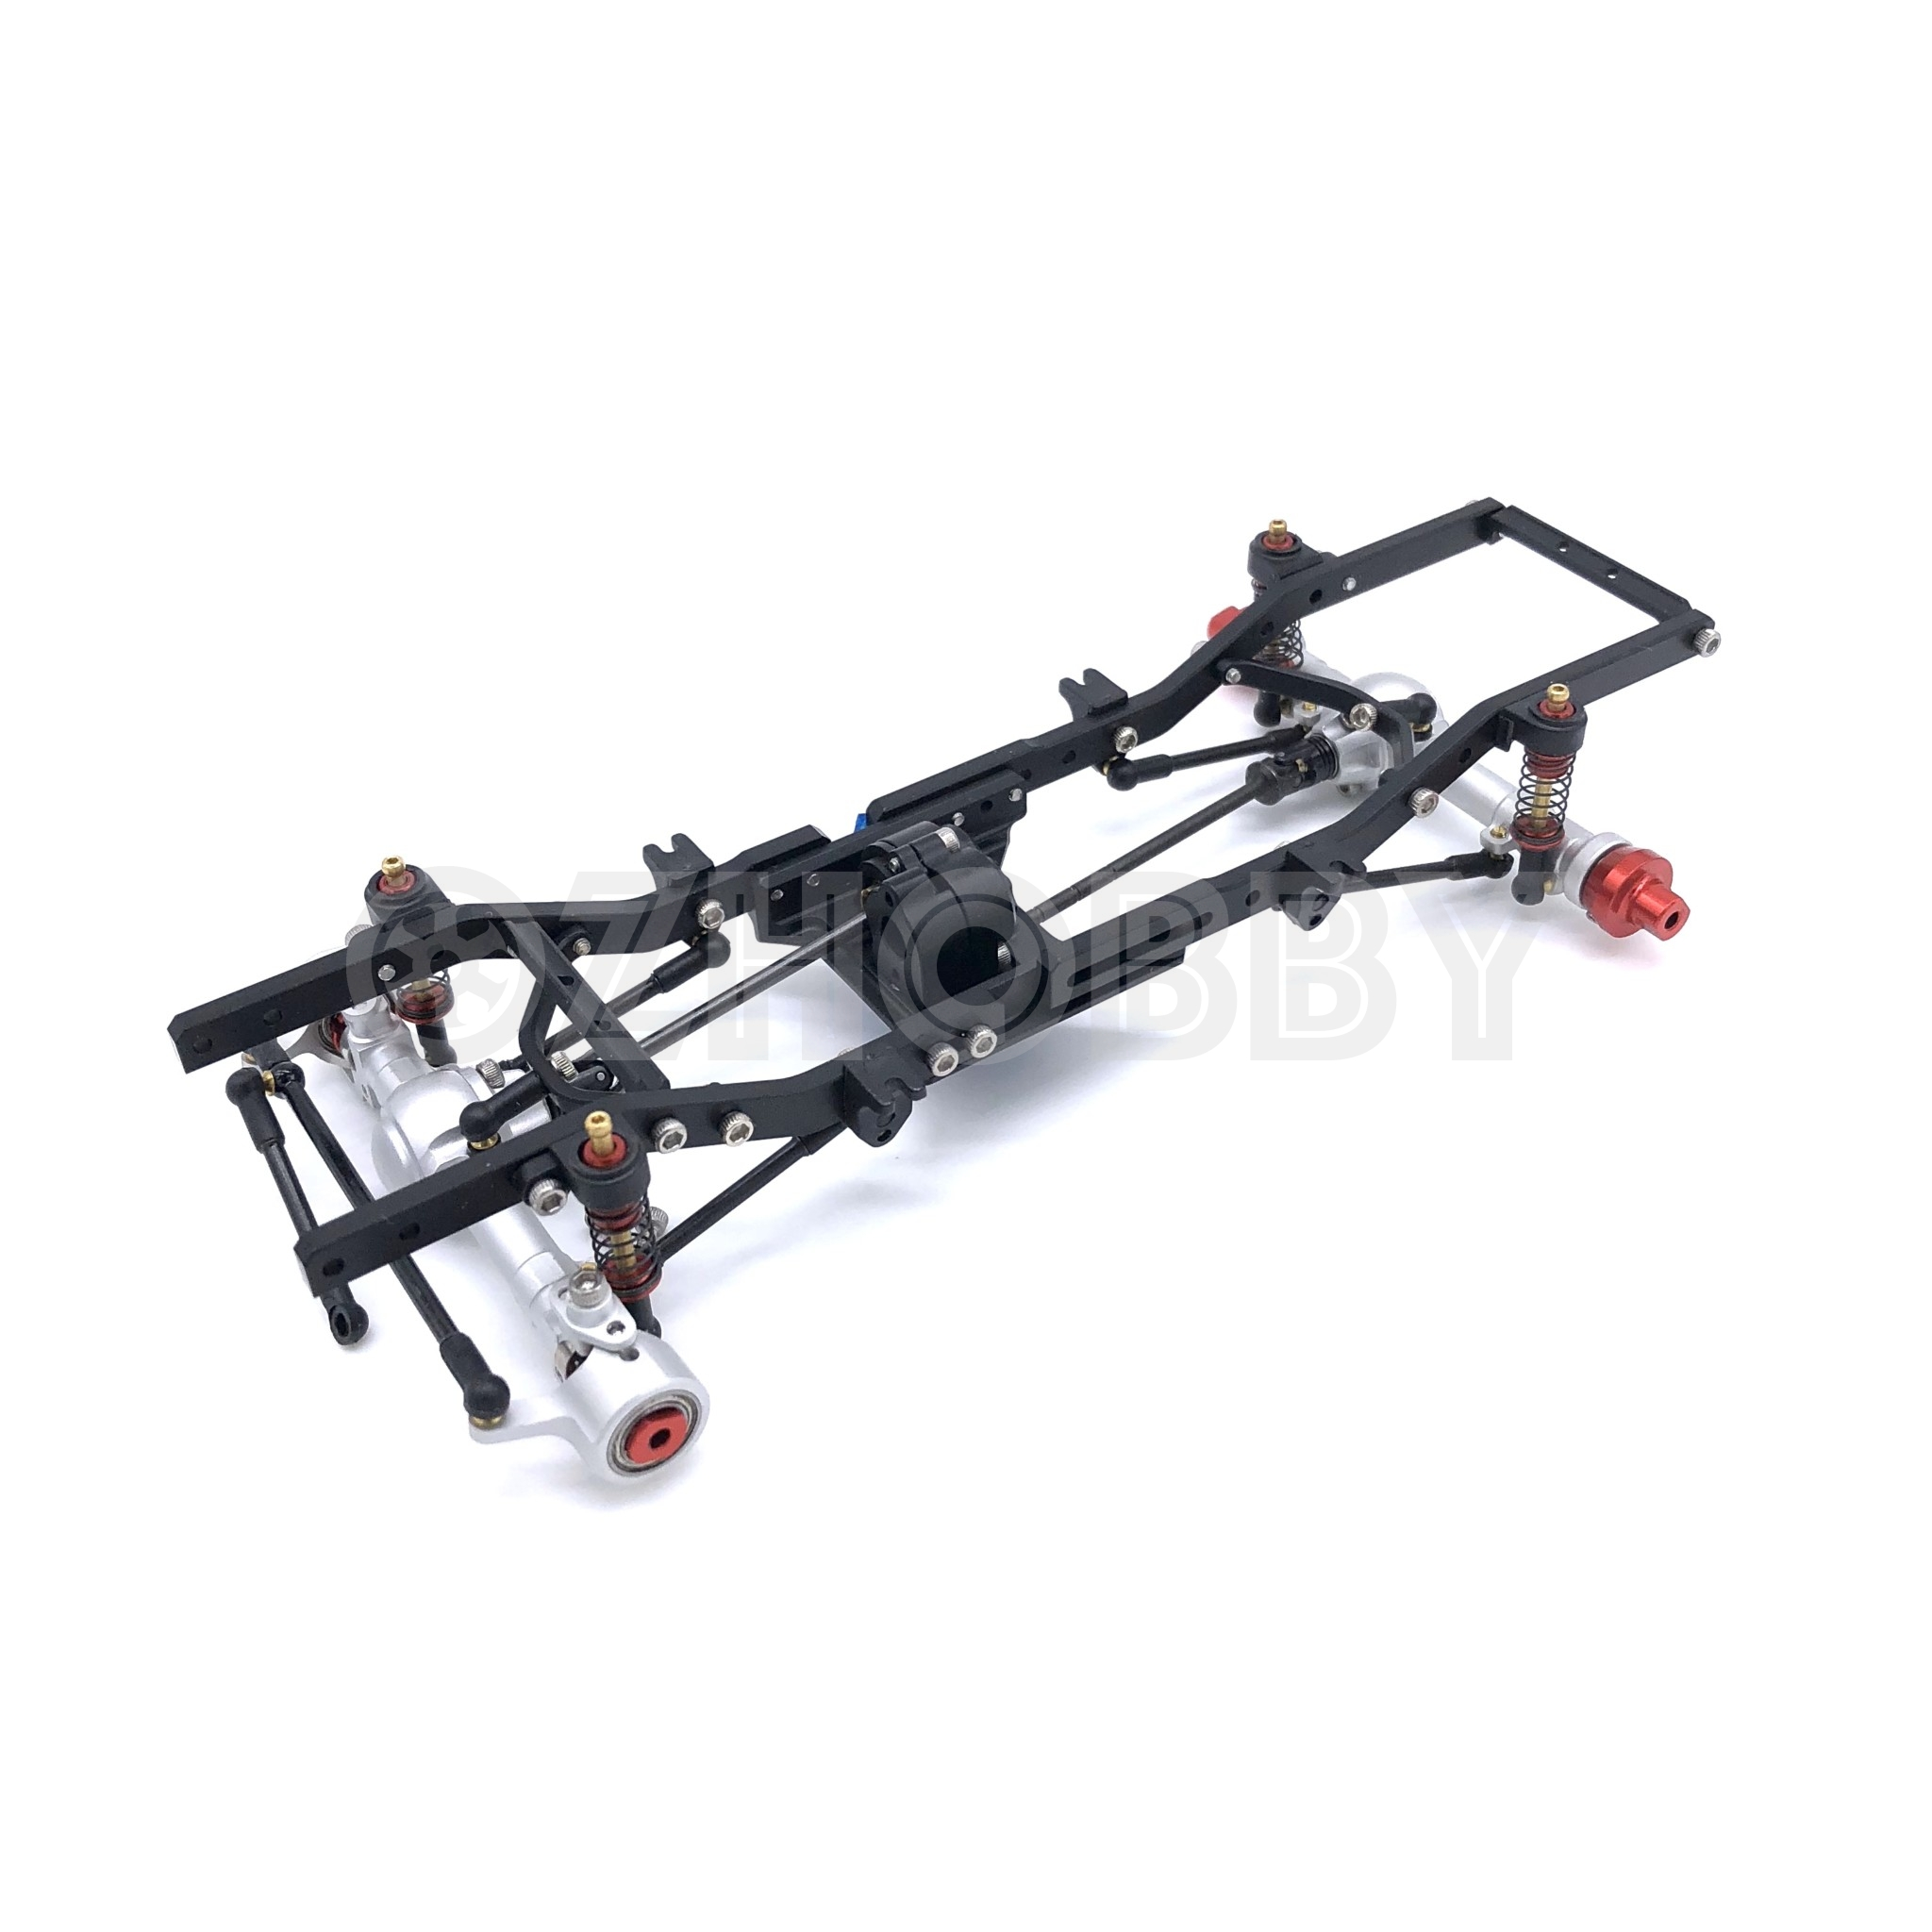 Autorc 1 24 Gk24 V2 Micro Rc Crawler Full Metal Chassis